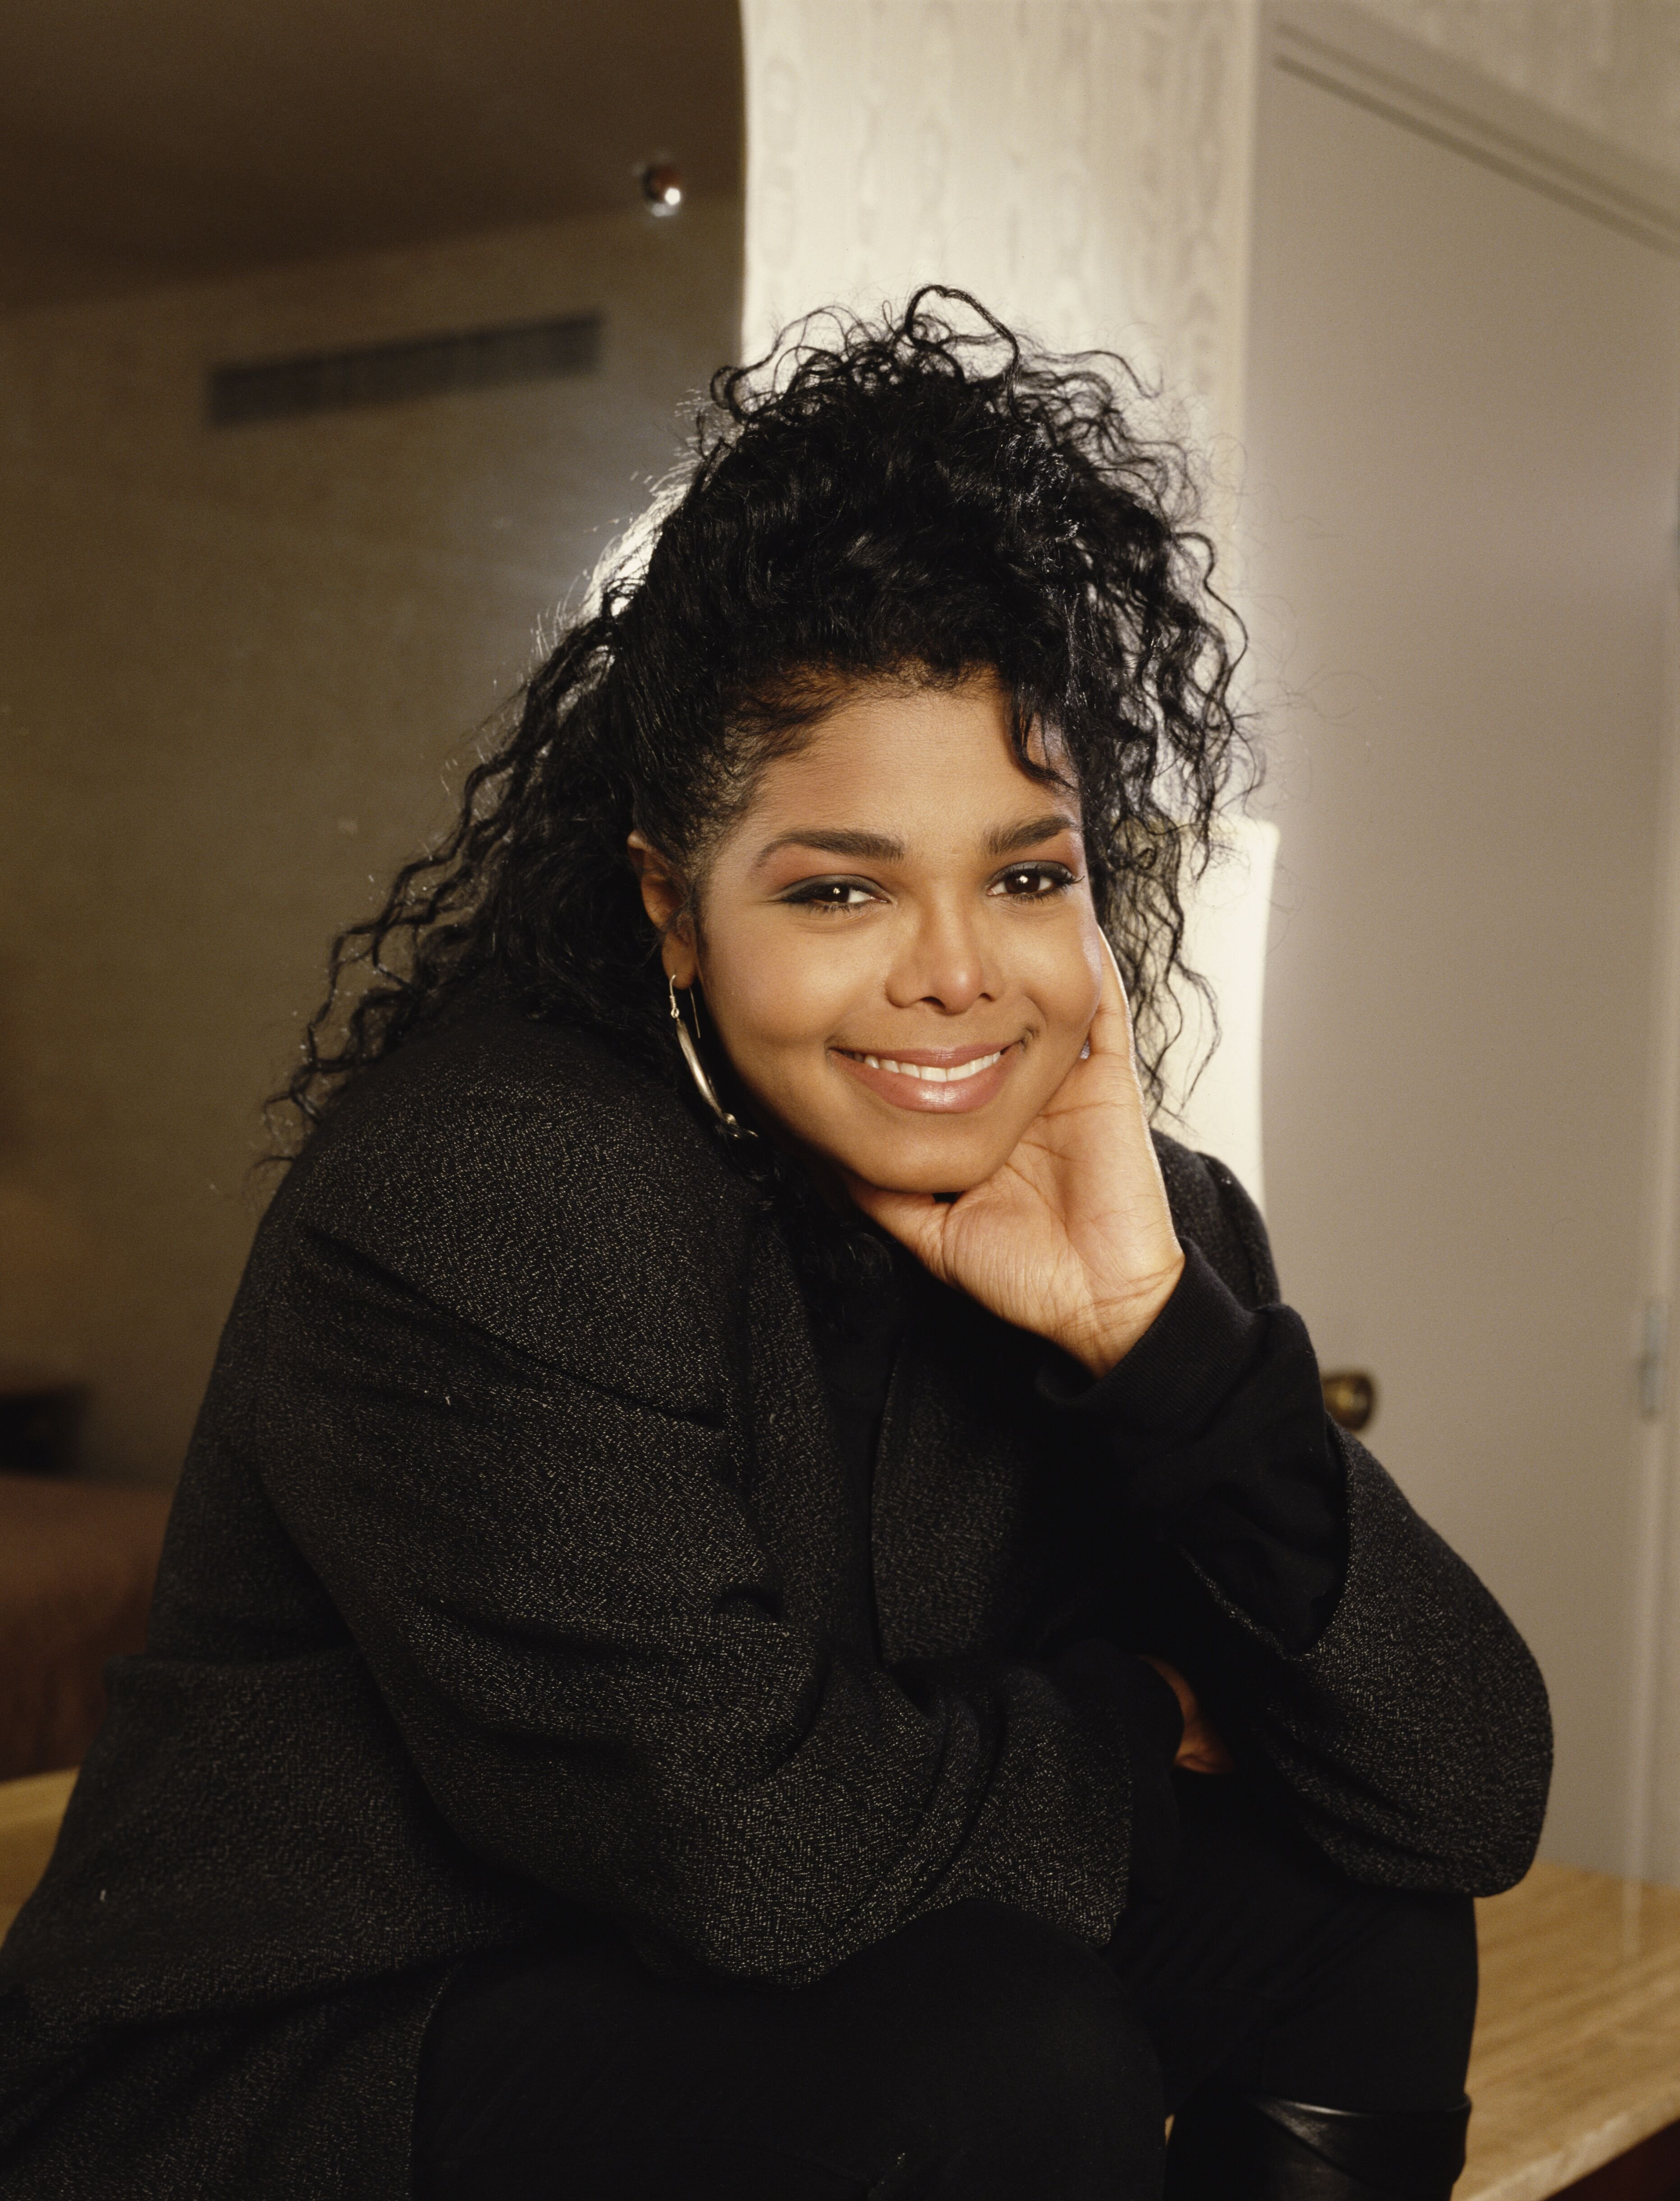 Singer and actress Janet Jackson, circa 1990 | Source: Getty Images